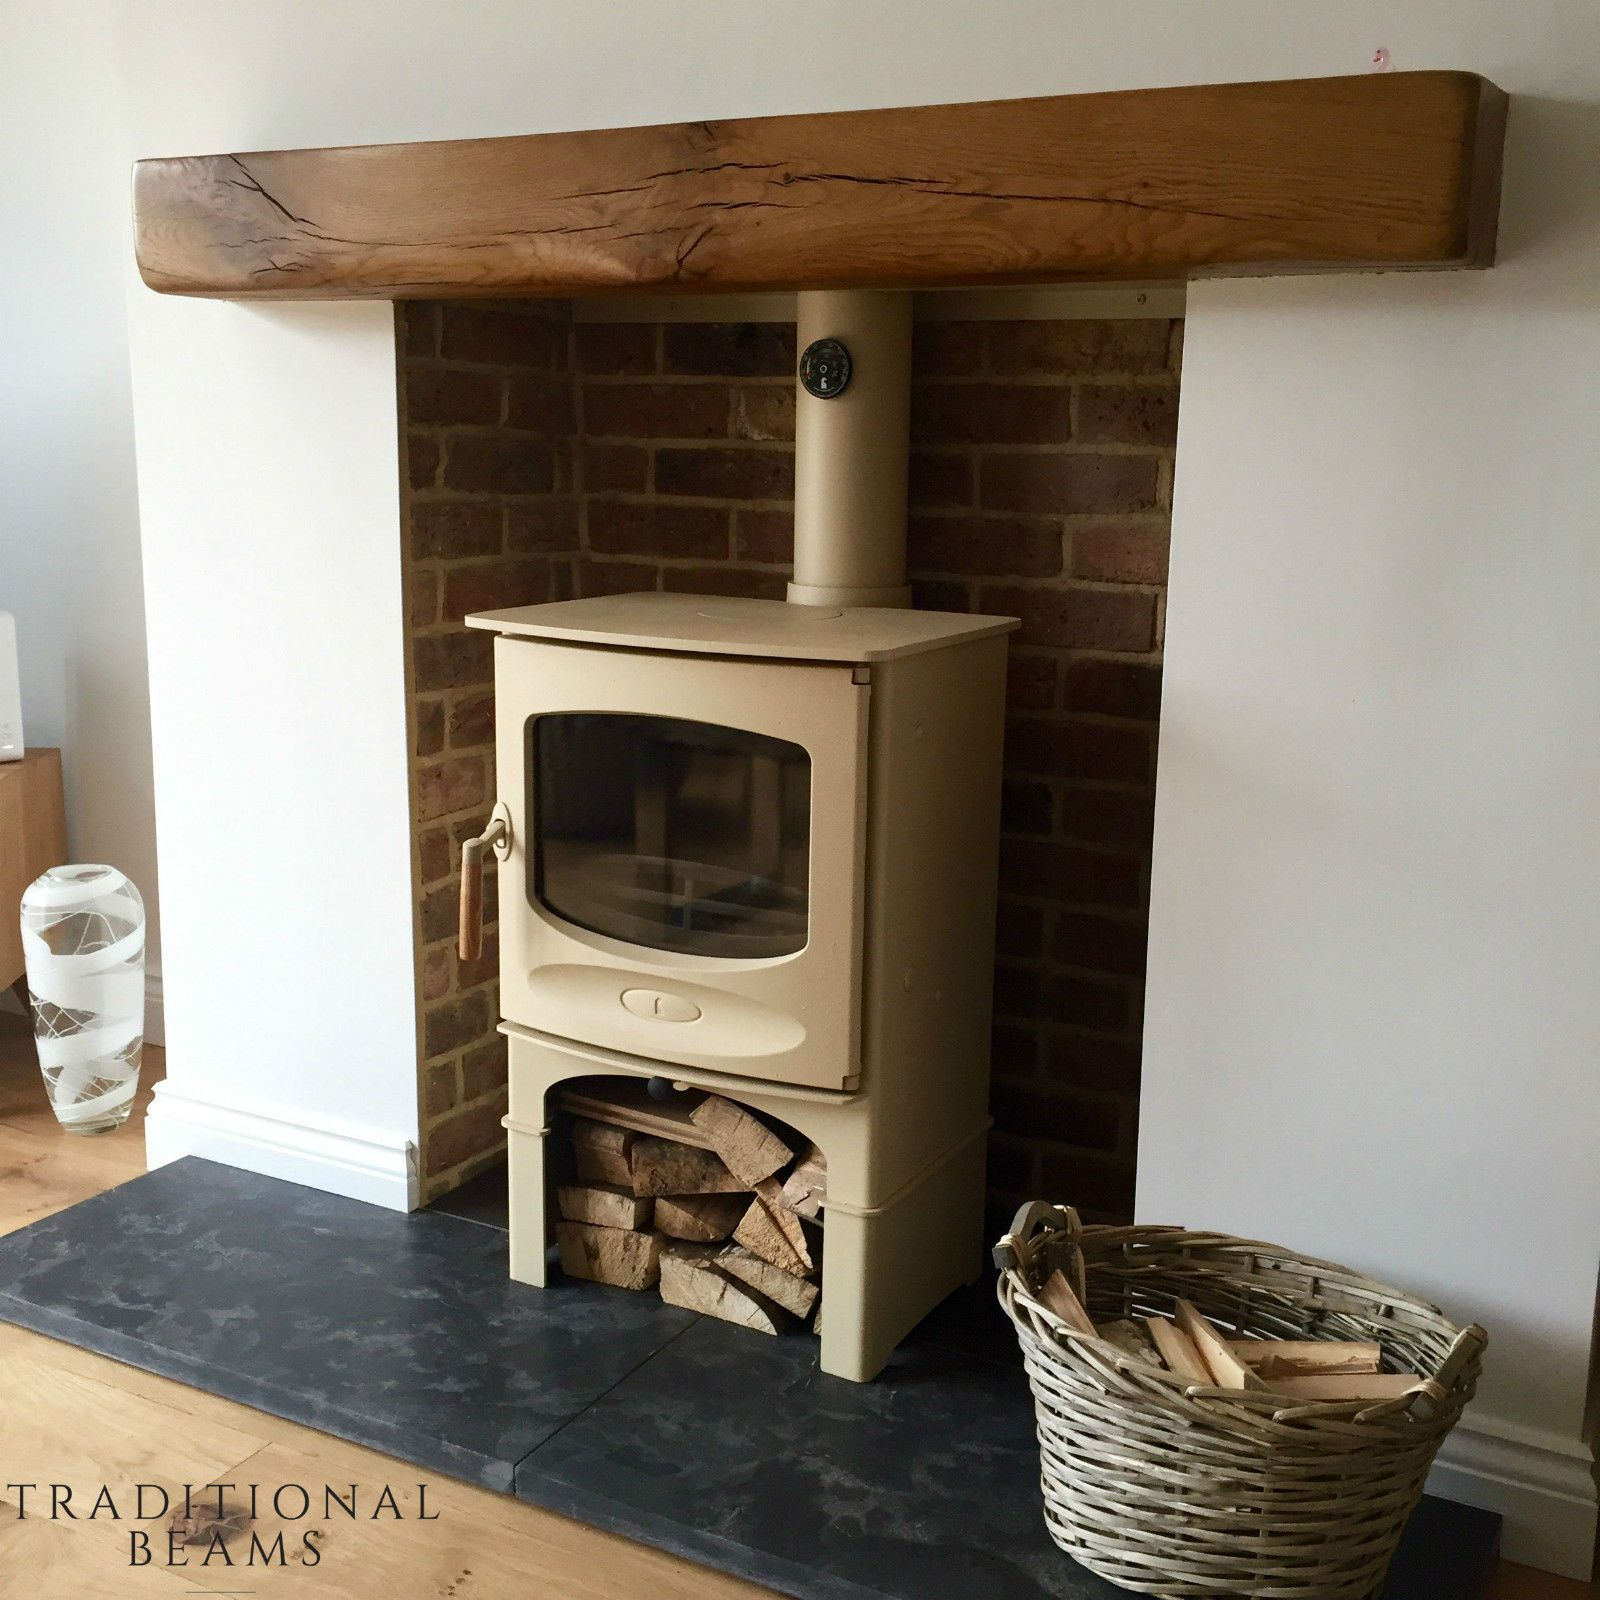 Fireplace Beams Solid Oak Beams Shaped Fireplace Beam Rustic Floating Shelf